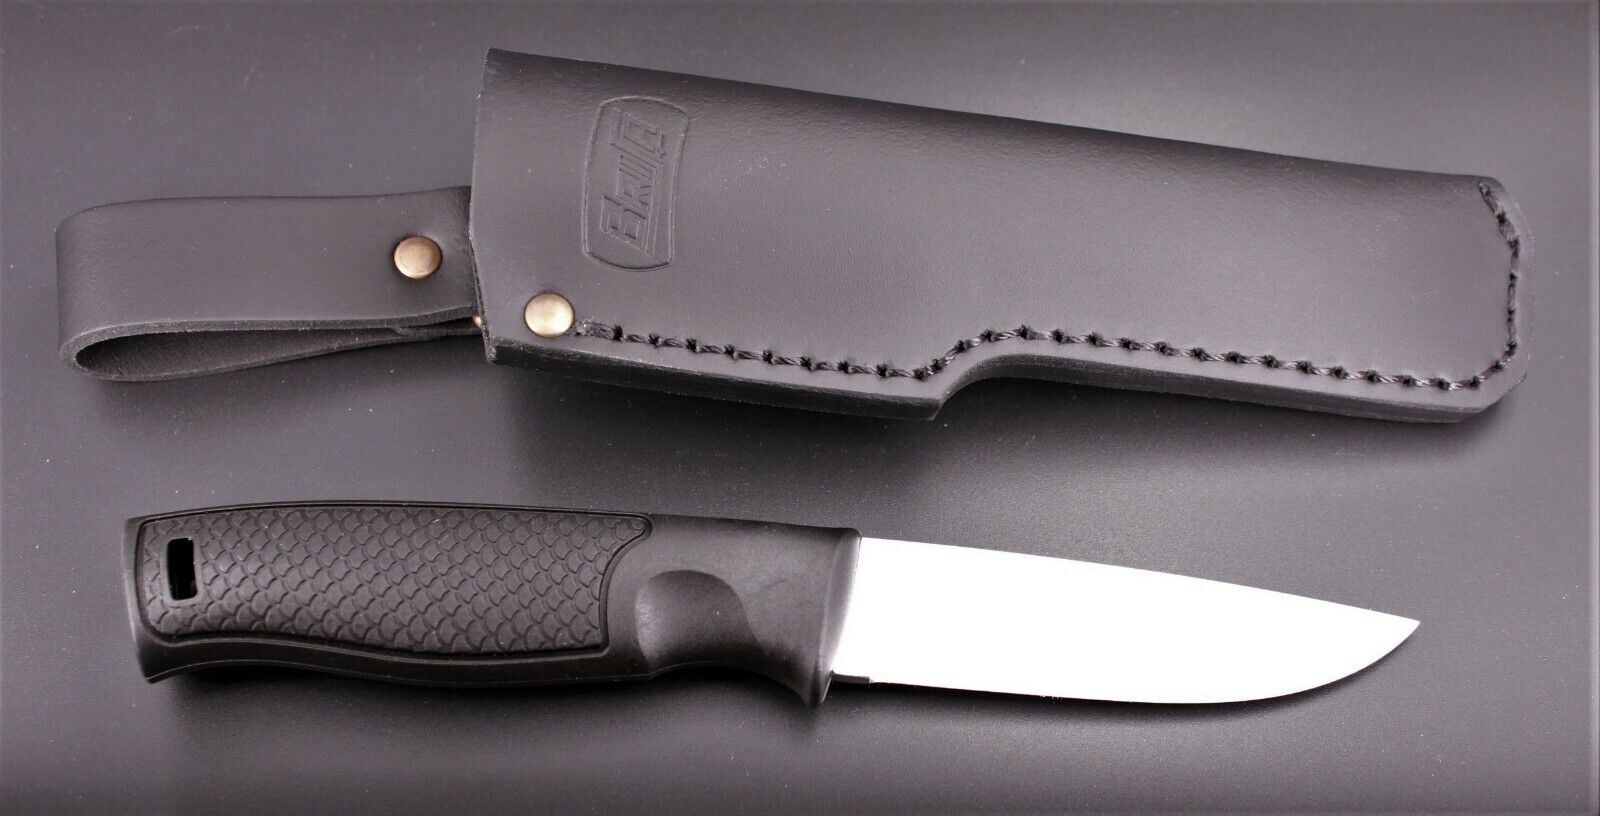 Knife Brisa Hiker 95 Flat with Plastic Handle and Leather Sheath